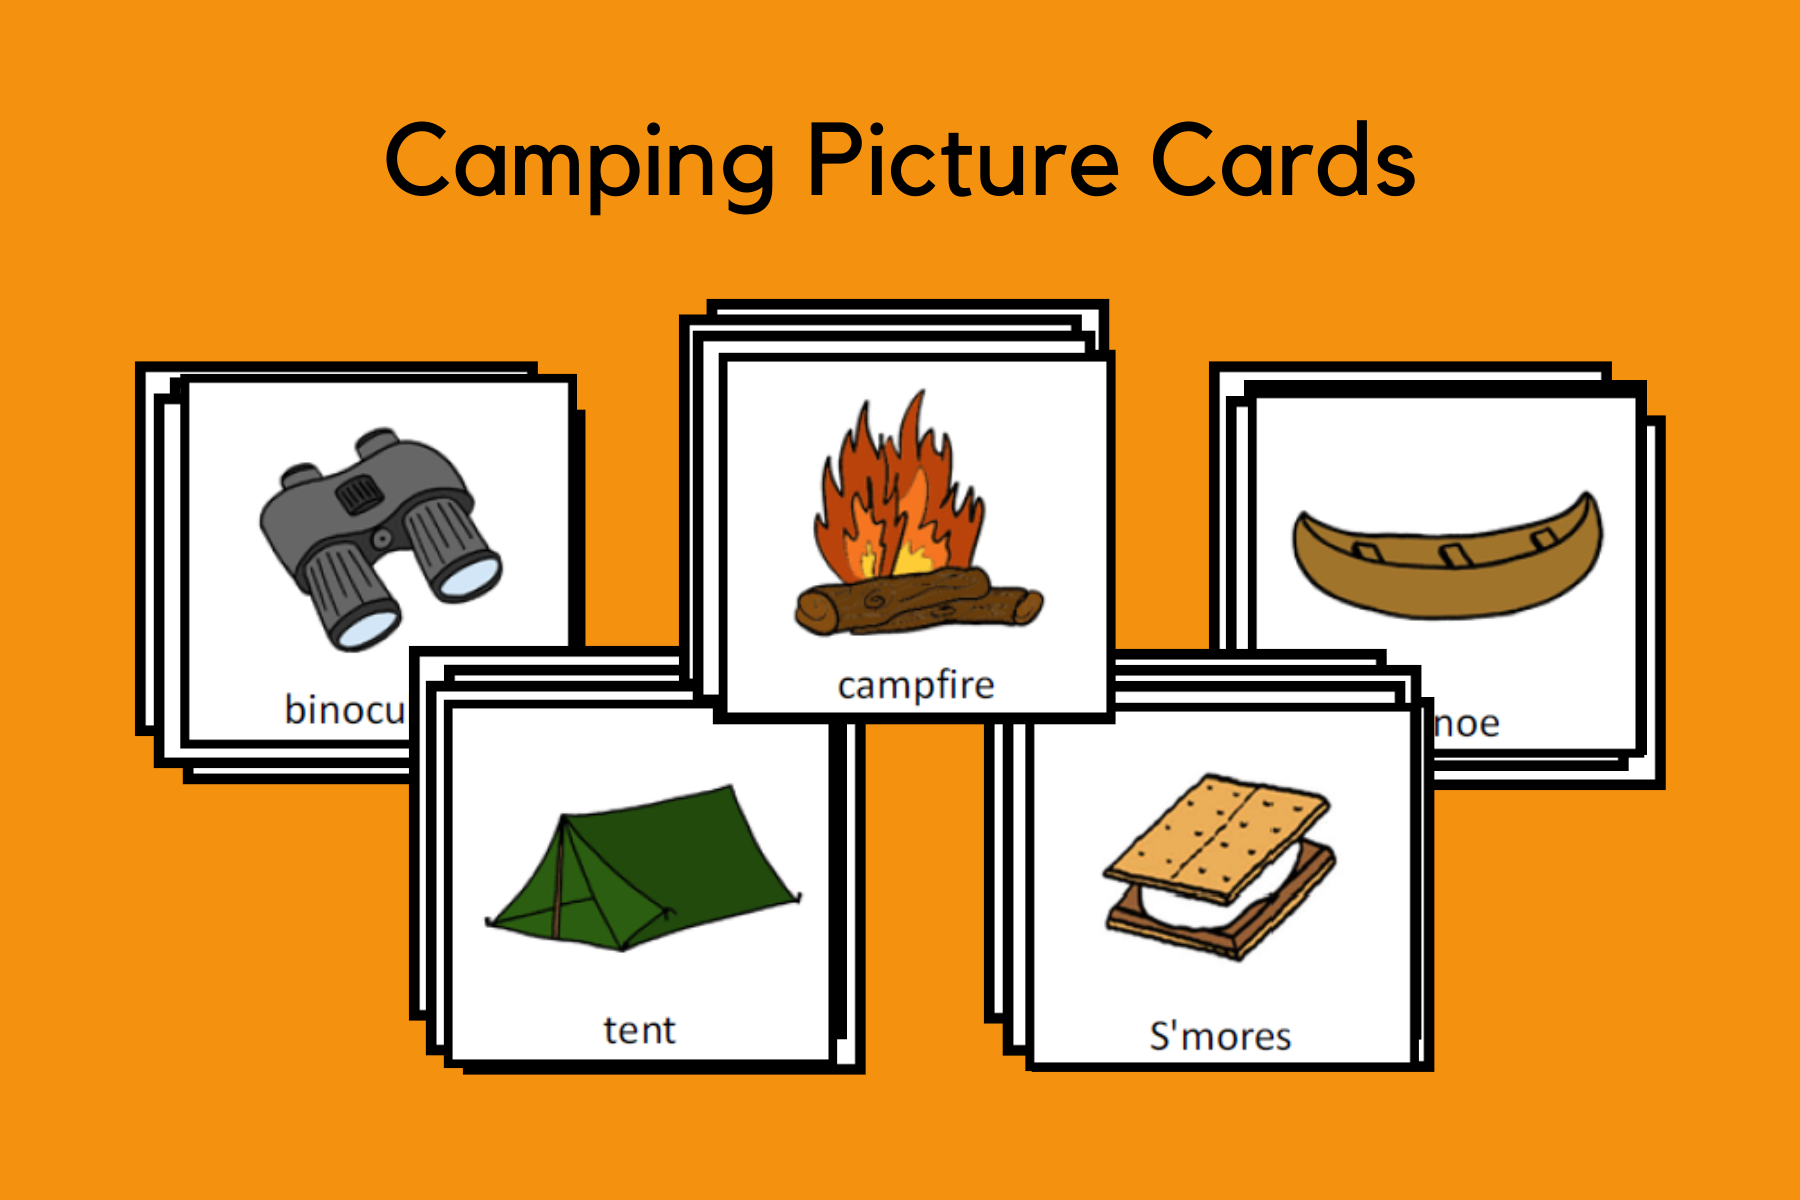 Camping Picture Cards